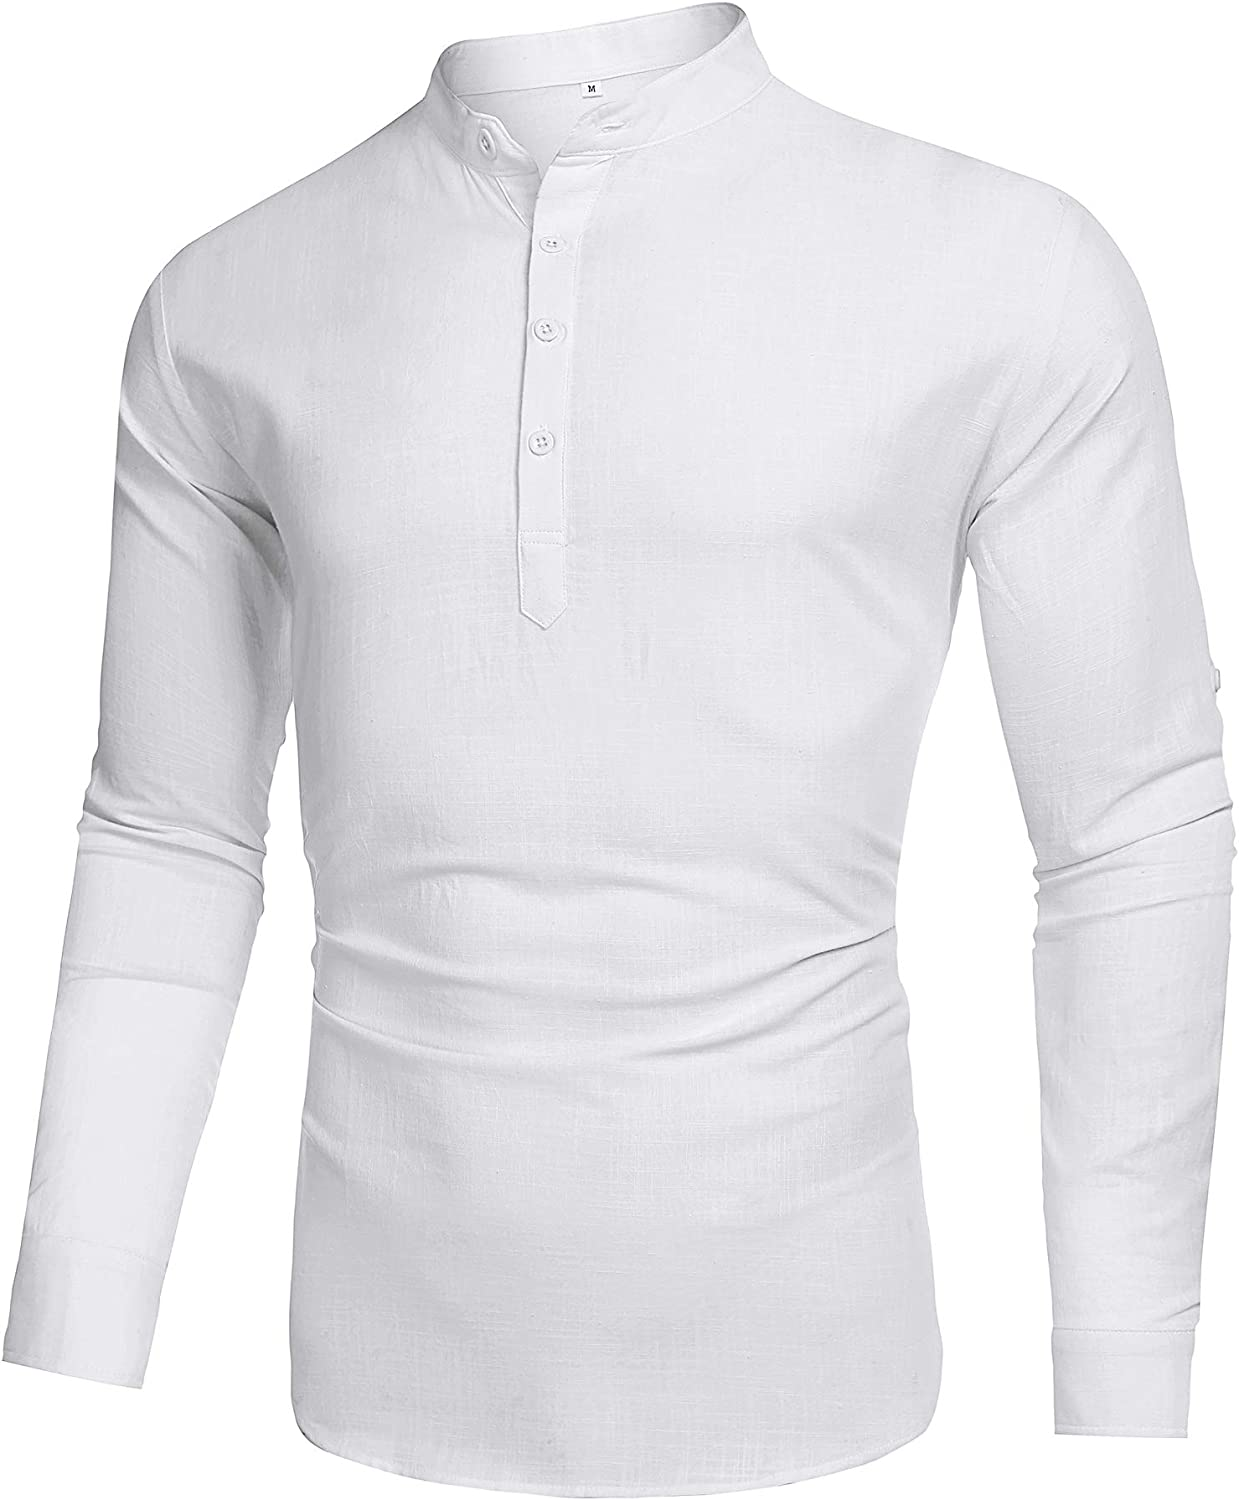 1920s Men's Shirts and Collars History LecGee Mens Cotton Linen Henley Shirt Long Sleeve Casual T-Shirt Beach Yoga Tops $21.99 AT vintagedancer.com